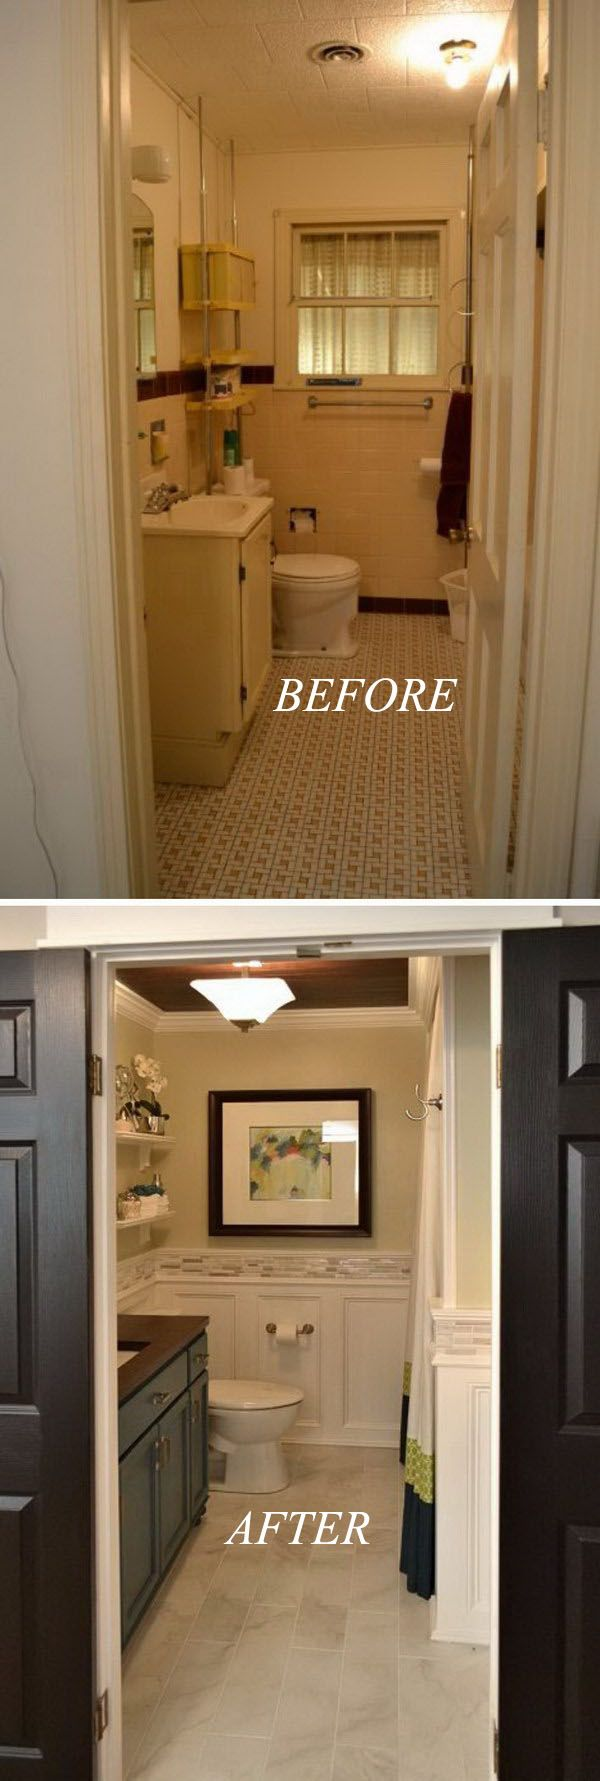 Hallway Bathroom Remodel. I've never seen tile rail over the molding. I like it!